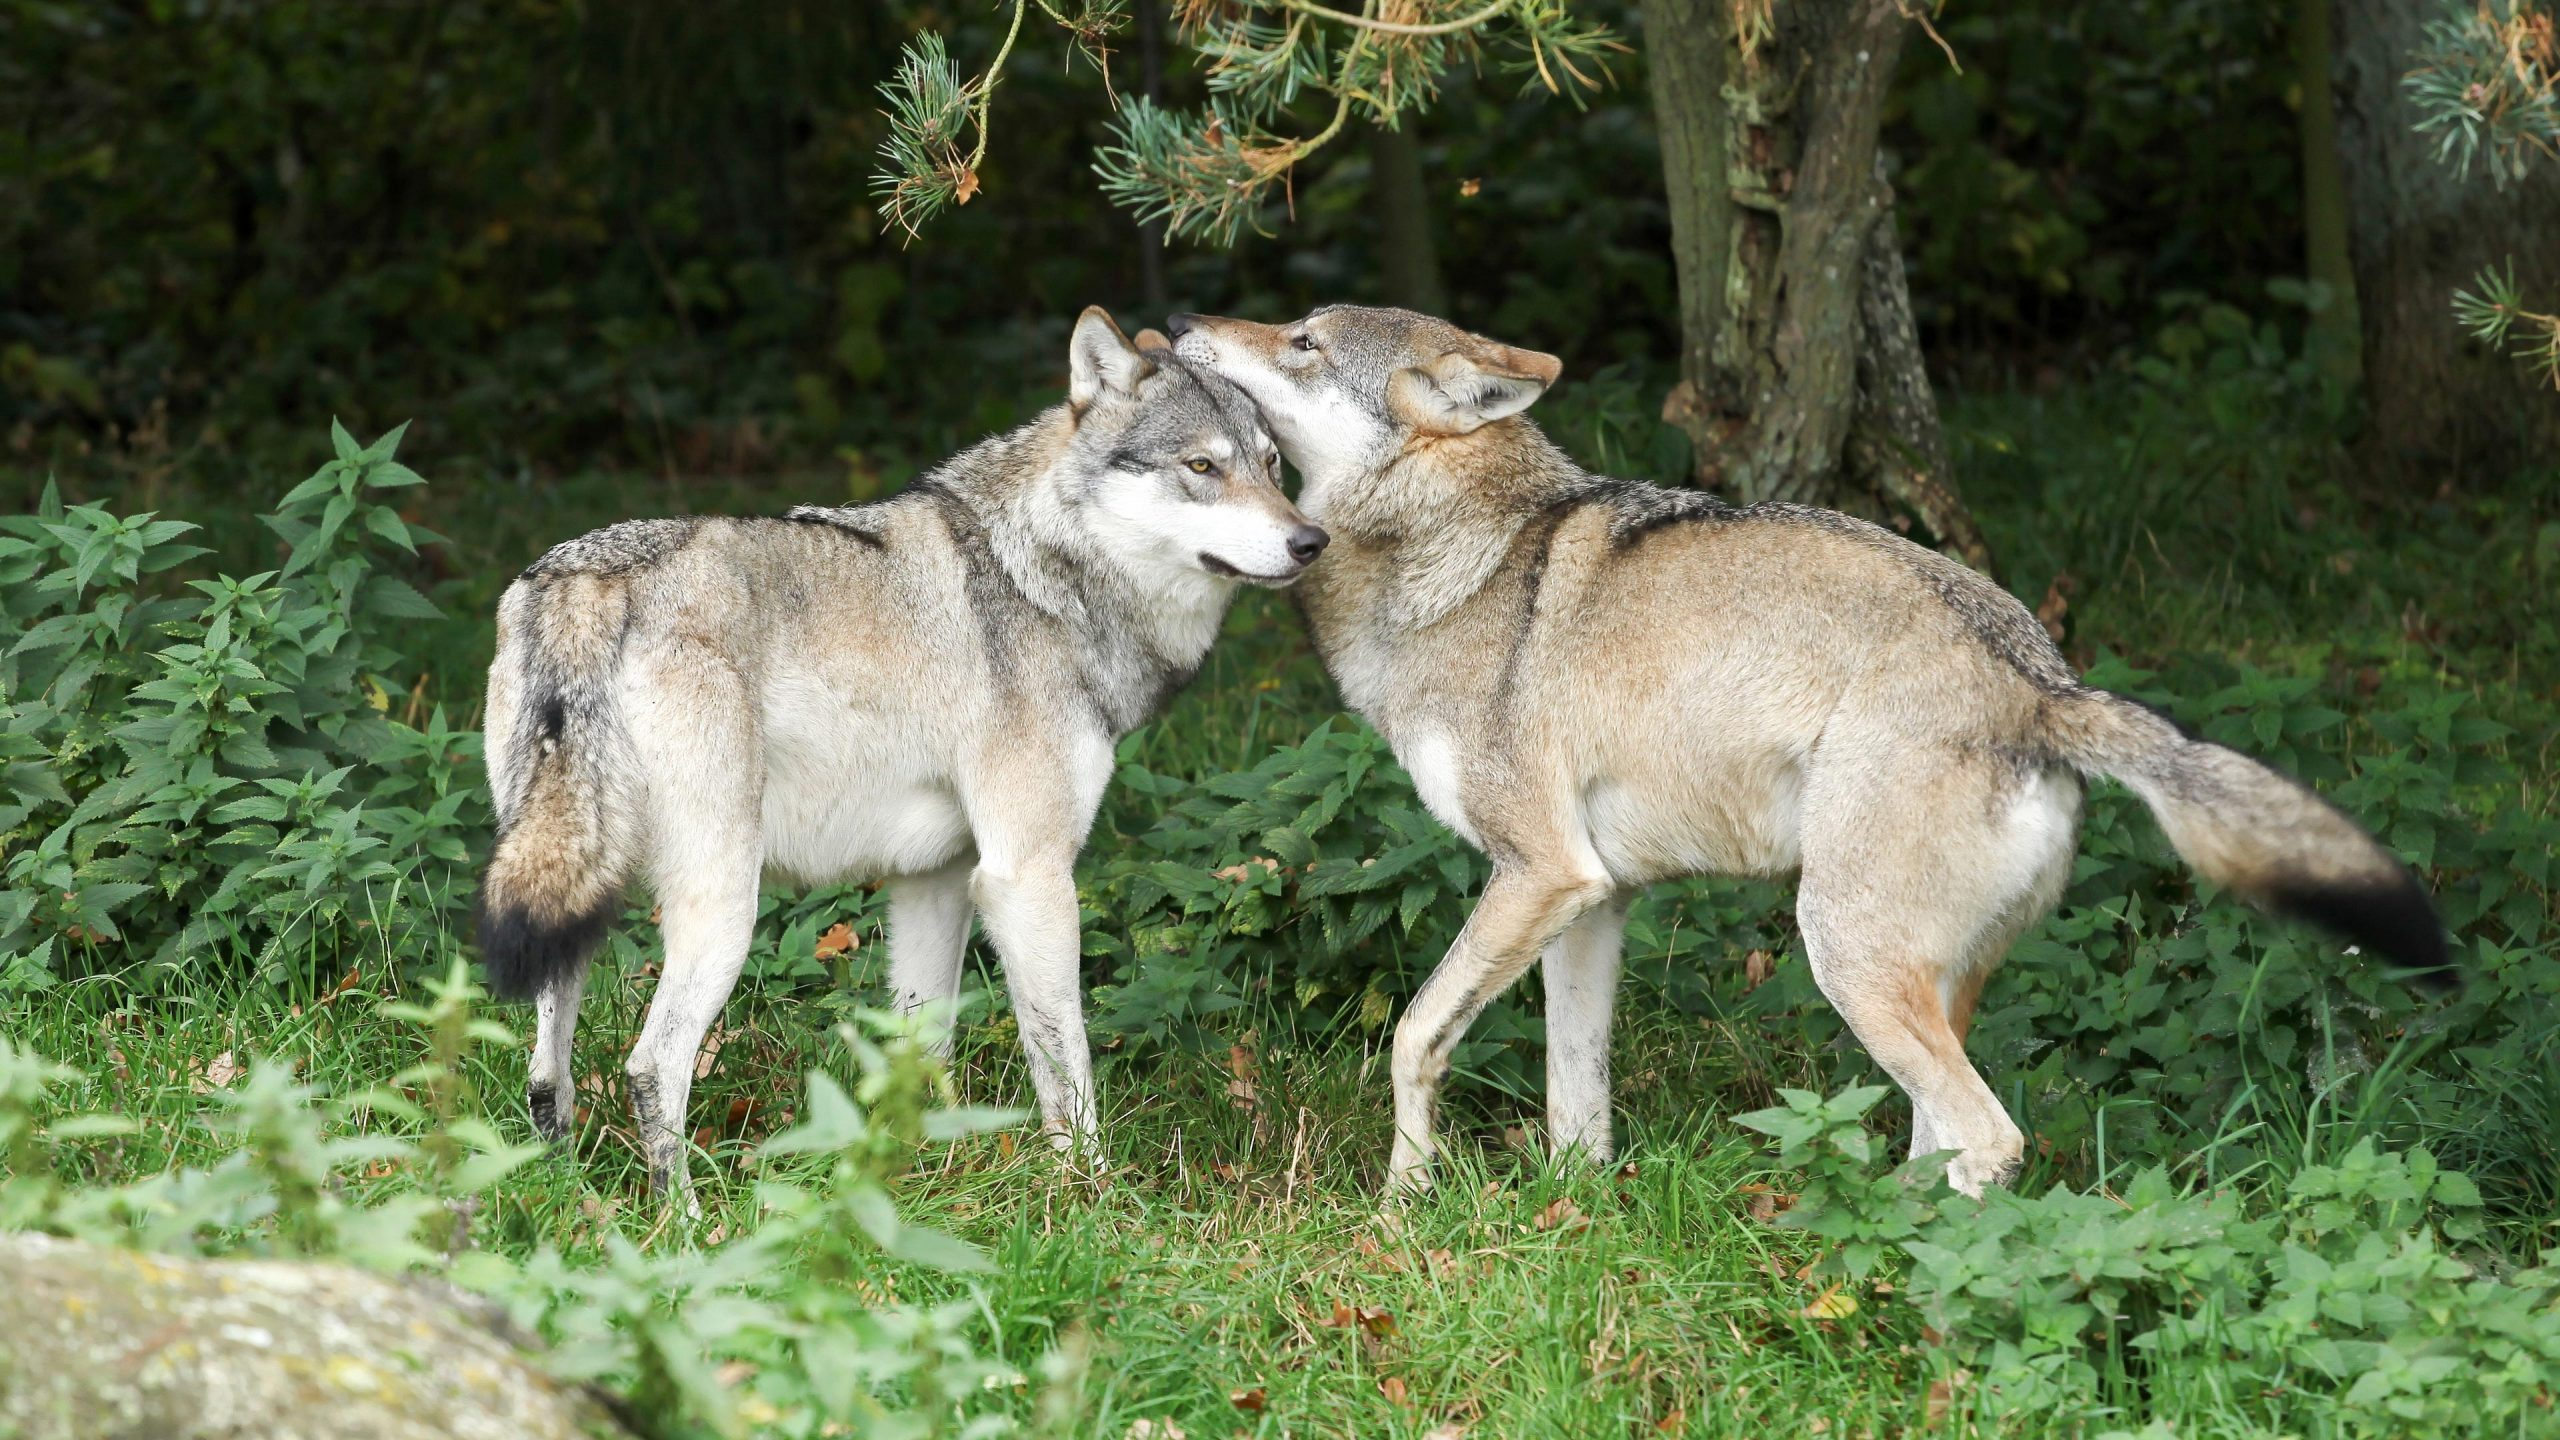 Mating With Relatives? New Research Shows It Is Not a Big Deal in Nature